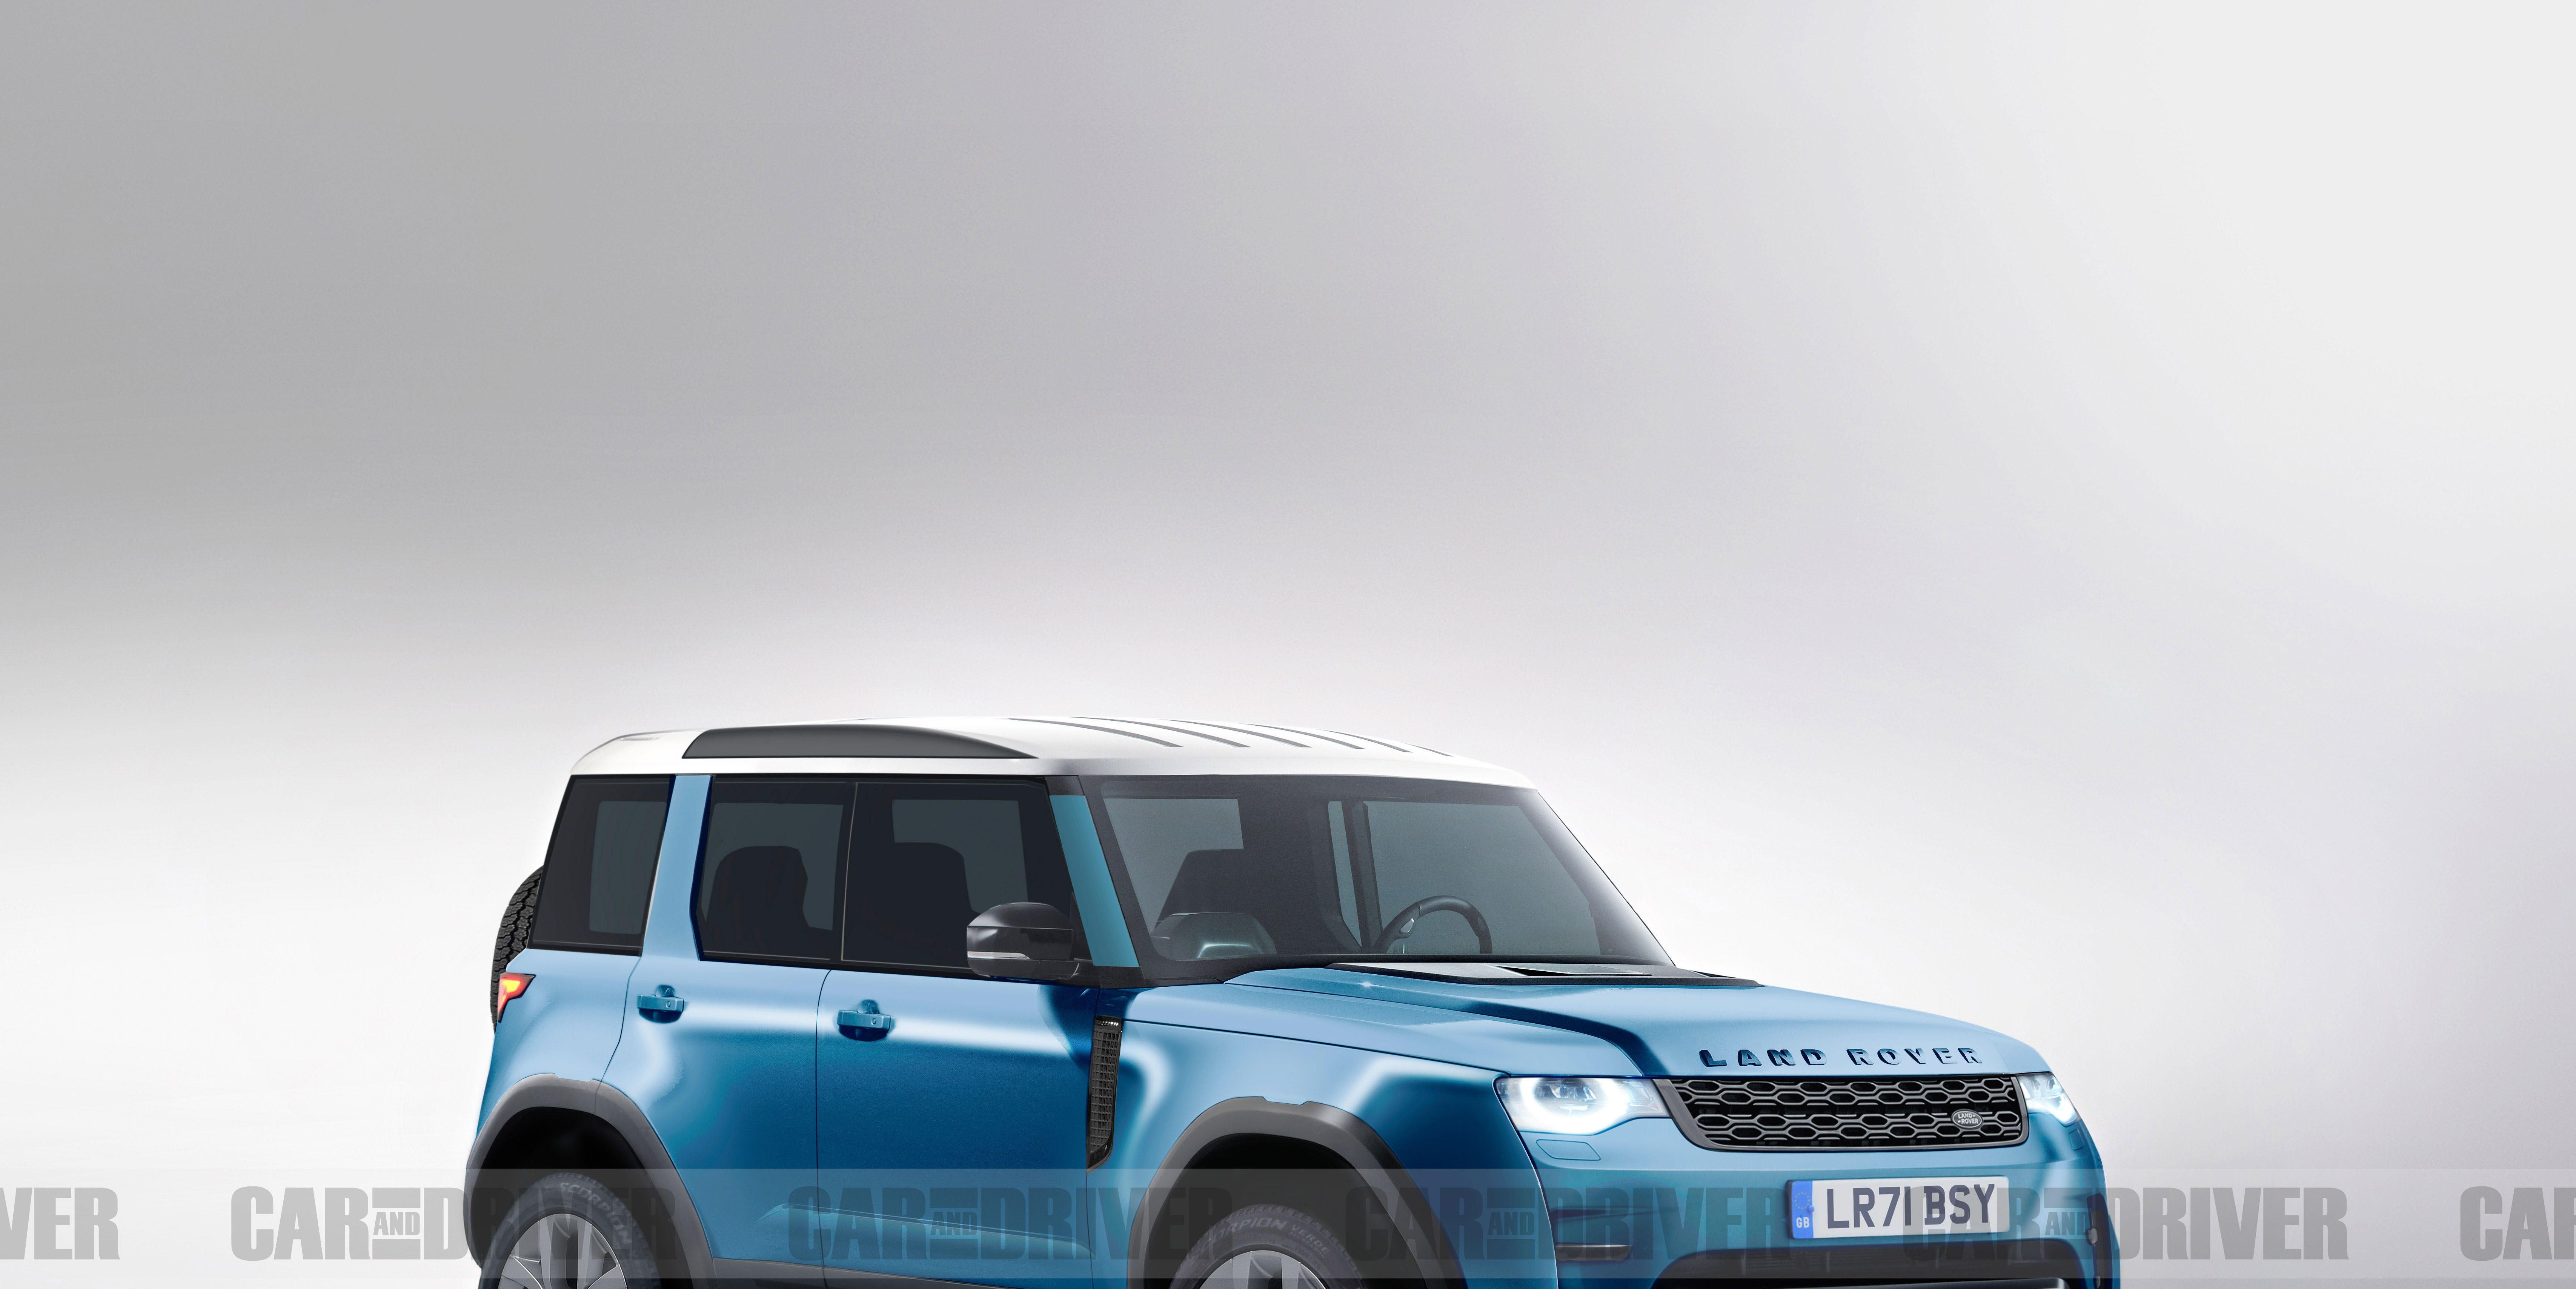 Land Rover Defender 80 Will Be Small, Affordable, but Still Rugged